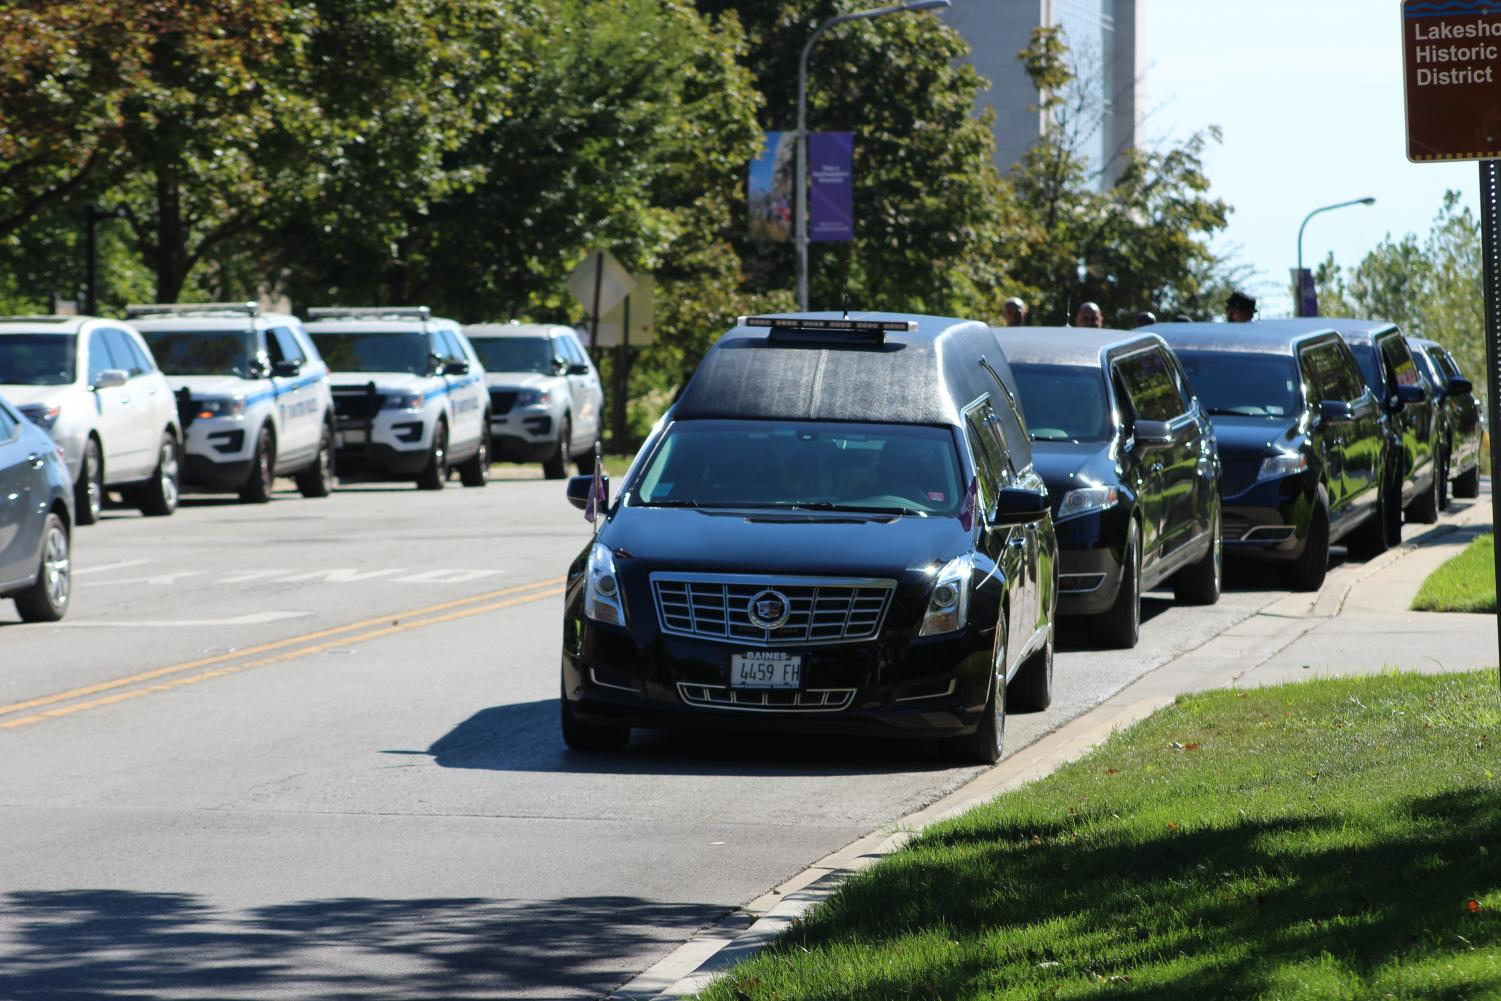 A funeral procession for Constance Lorraine Hairston Morton outside Alice Millar Chapel on Saturday. Hundreds turned out to honor the legacy of a woman who built strong relationships and broke down racial barriers.